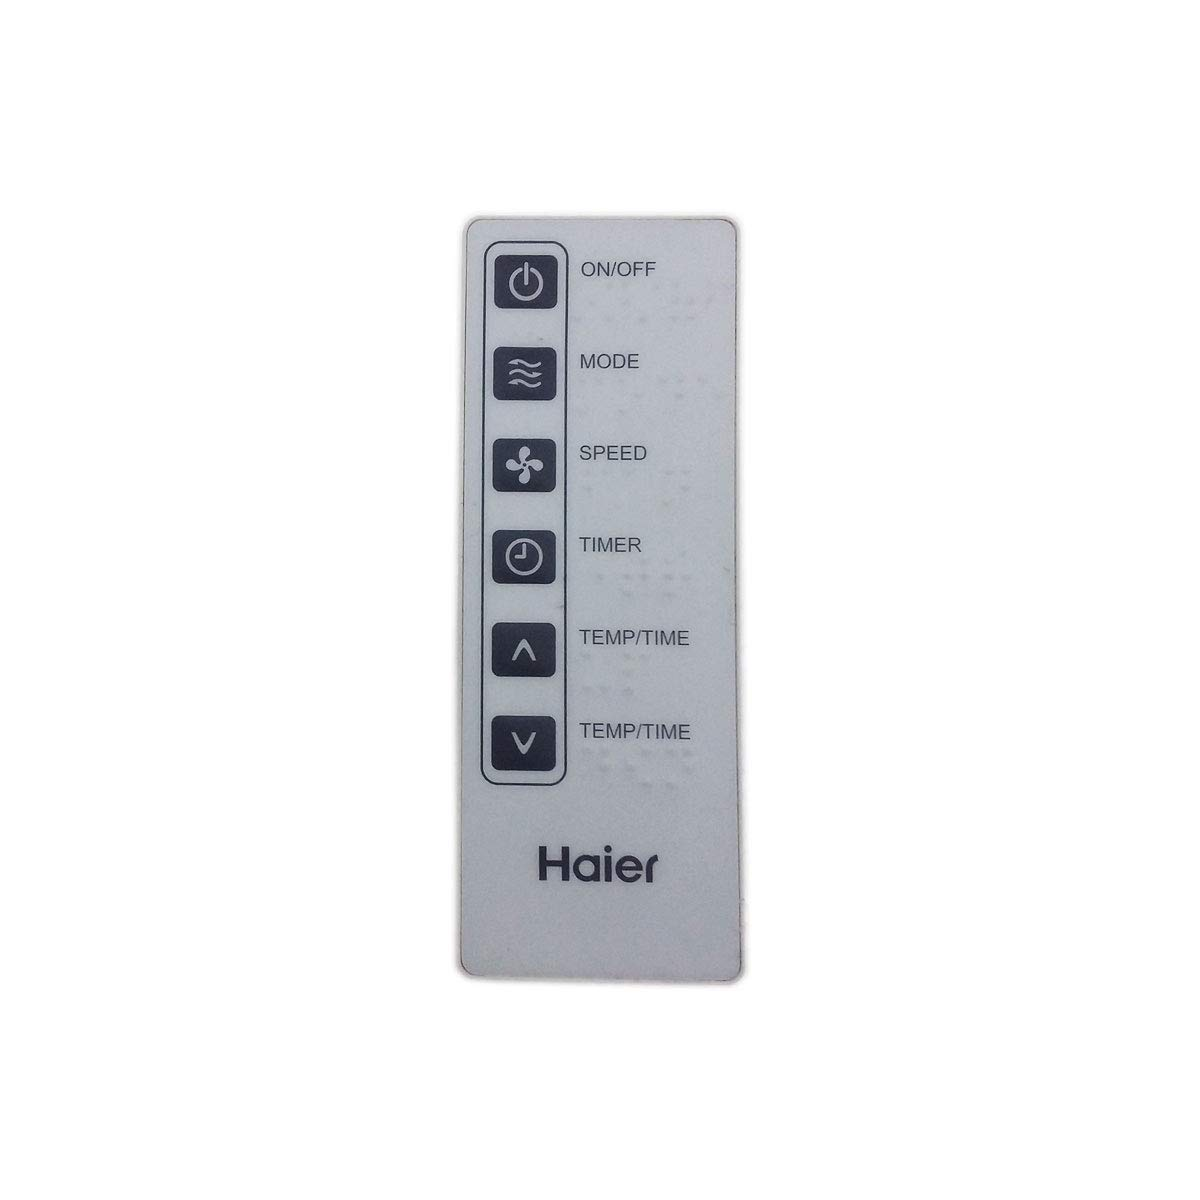 Factory Original Haier AC Remote Control/Works with Many Air Conditioners (A0010401791) by Haier